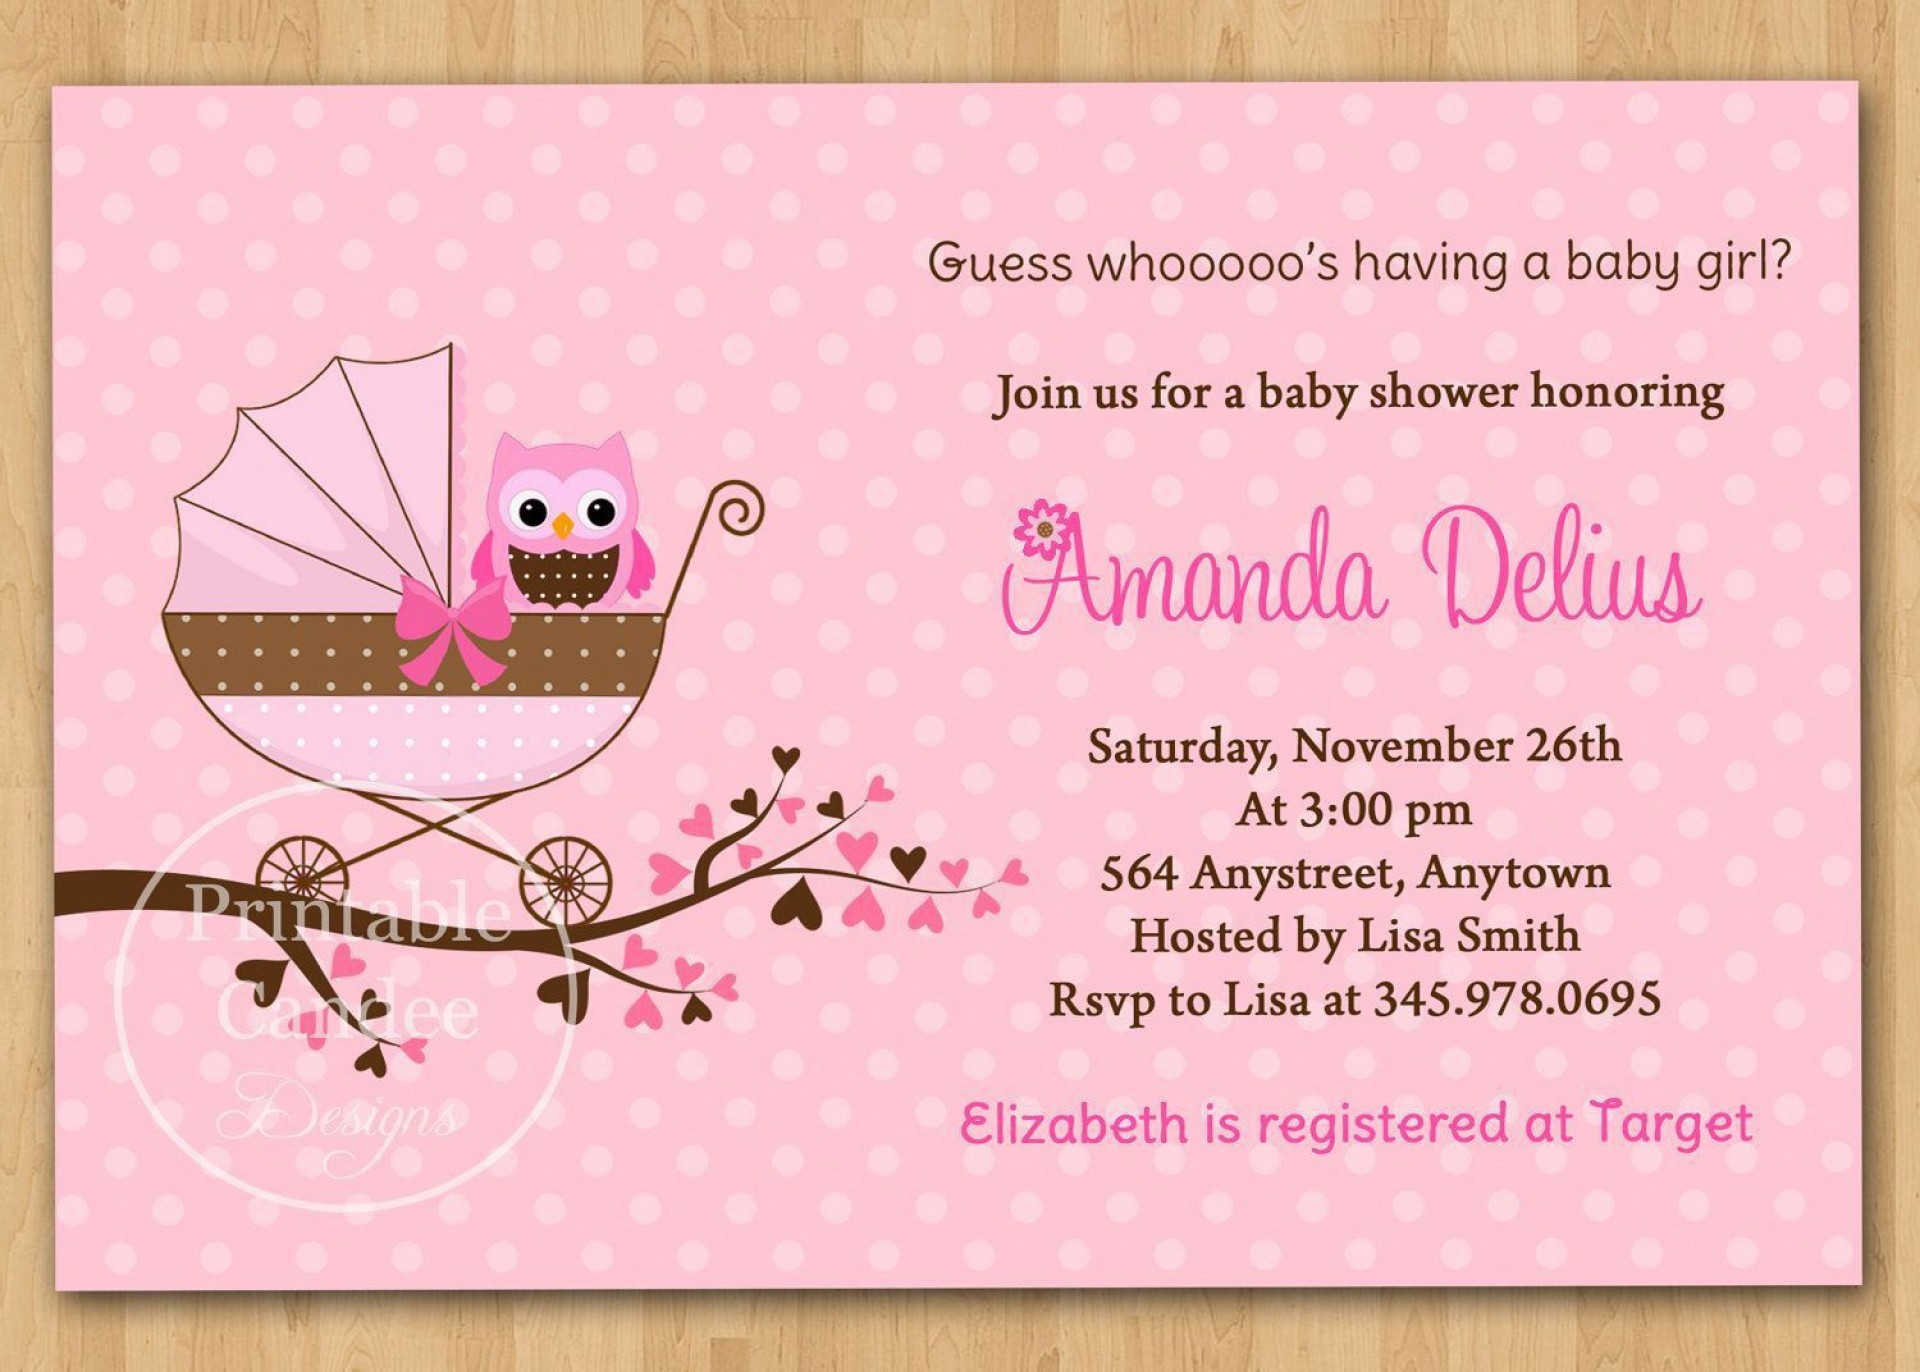 001 Unbelievable Baby Shower Invitation Wording Example Highest Clarity  Examples Invite Coed Idea For Boy1920